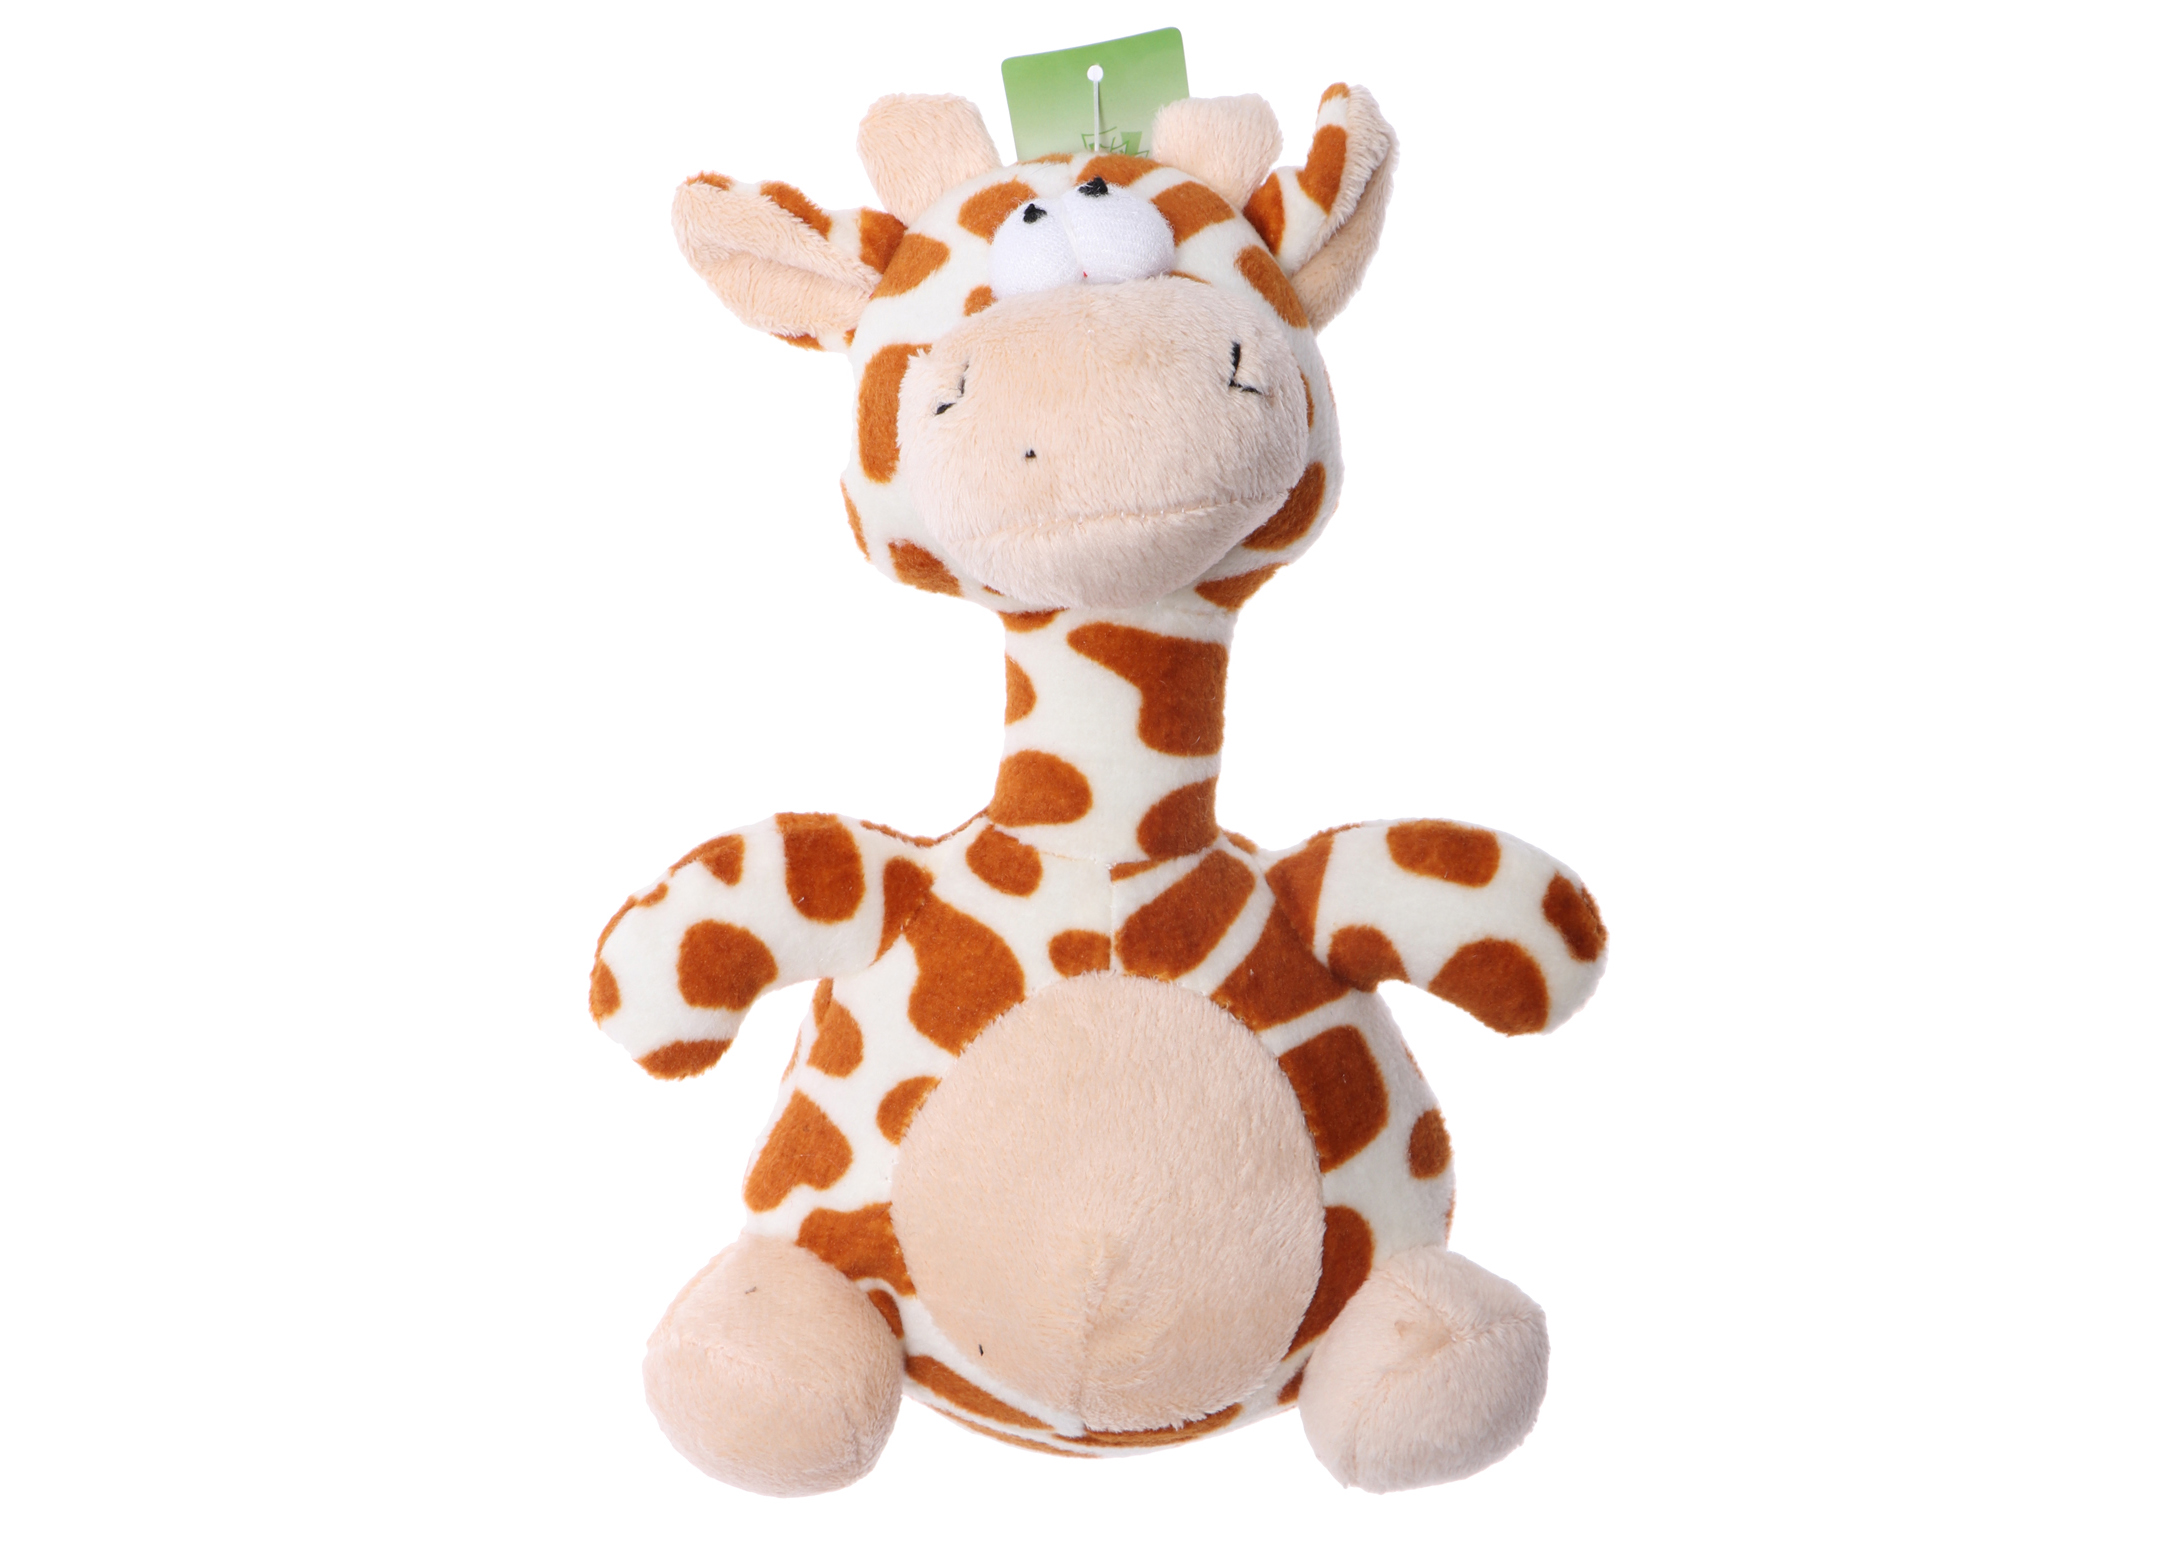 Chuckle City Plush Toy with Squeaker Giraffe 20 cm